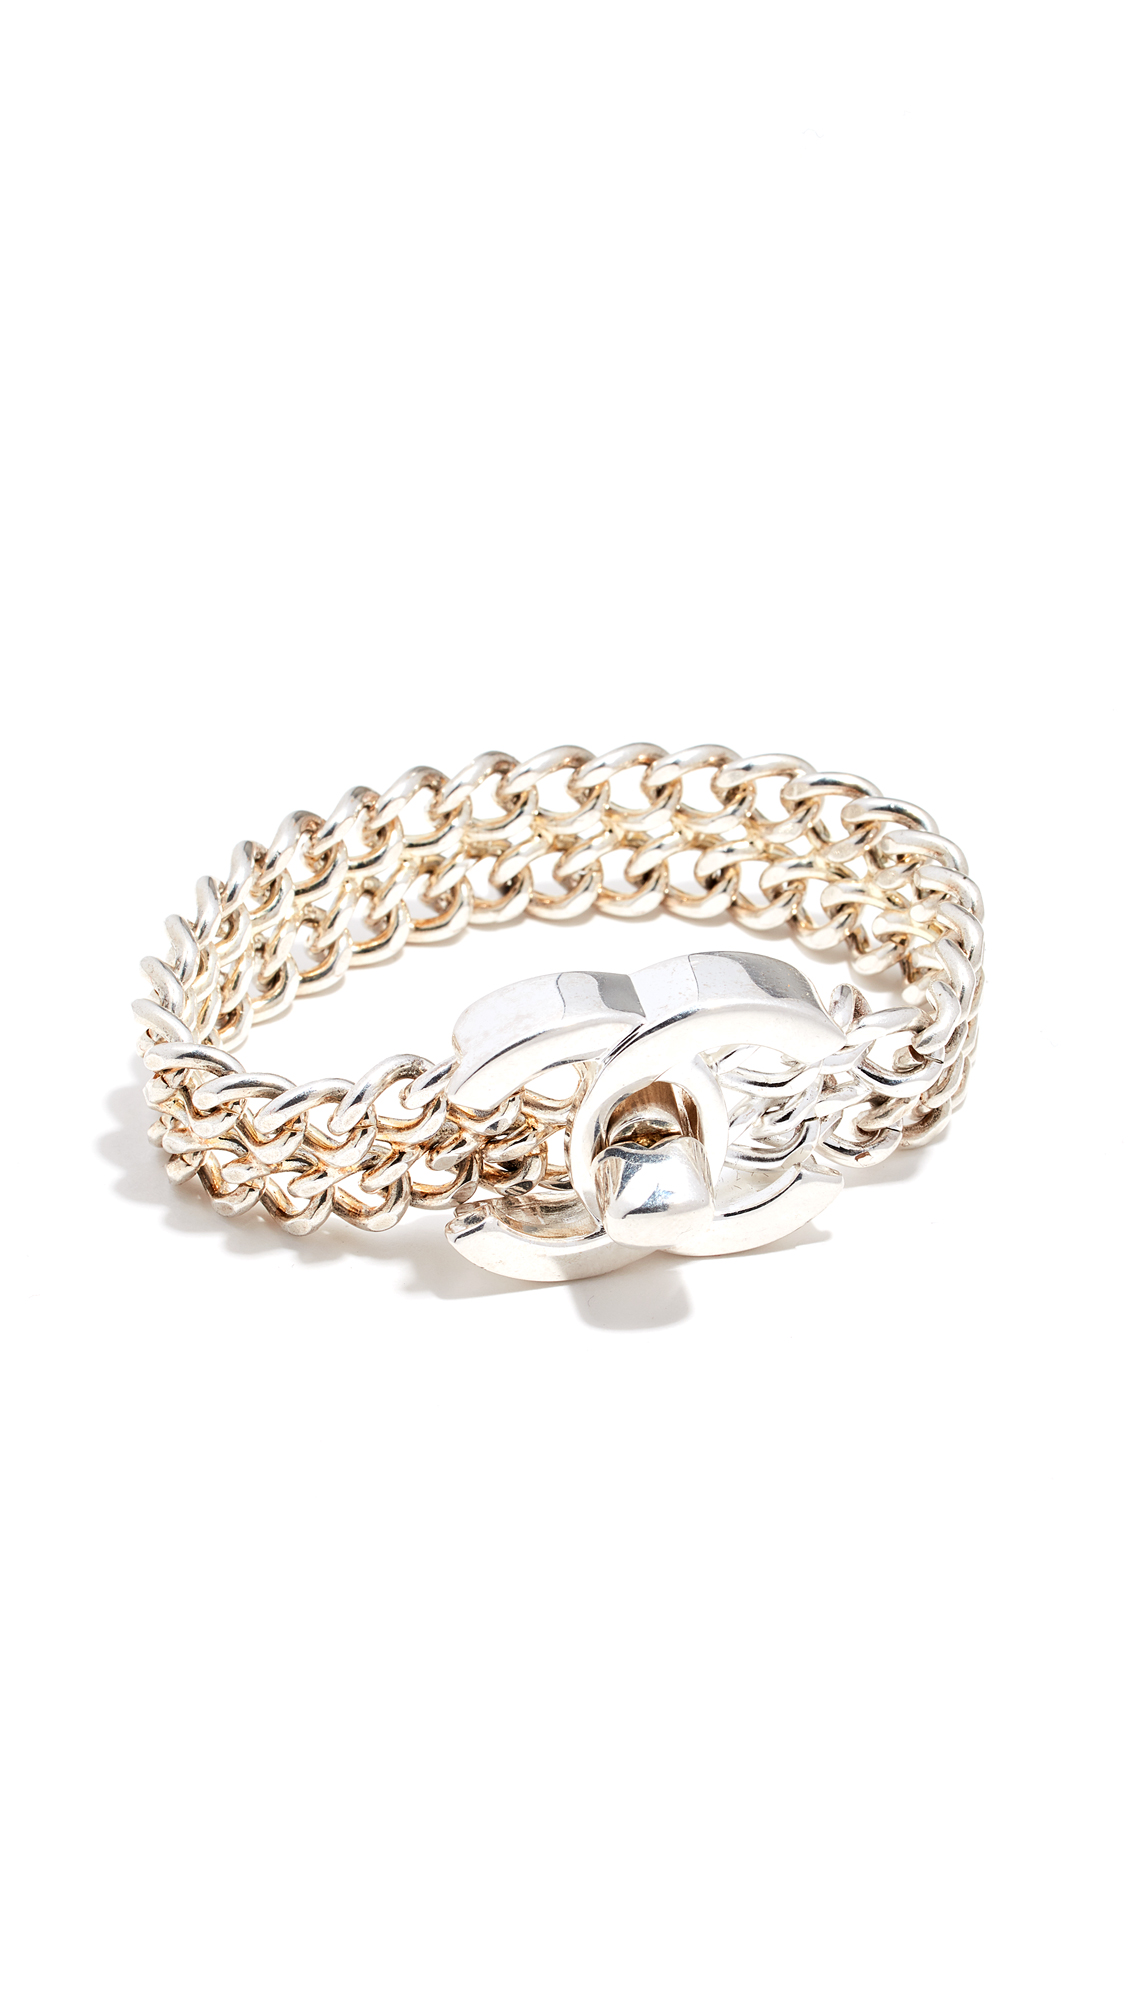 WHAT GOES AROUND COMES AROUND Chanel Large Silver Turn Lock Bracelet